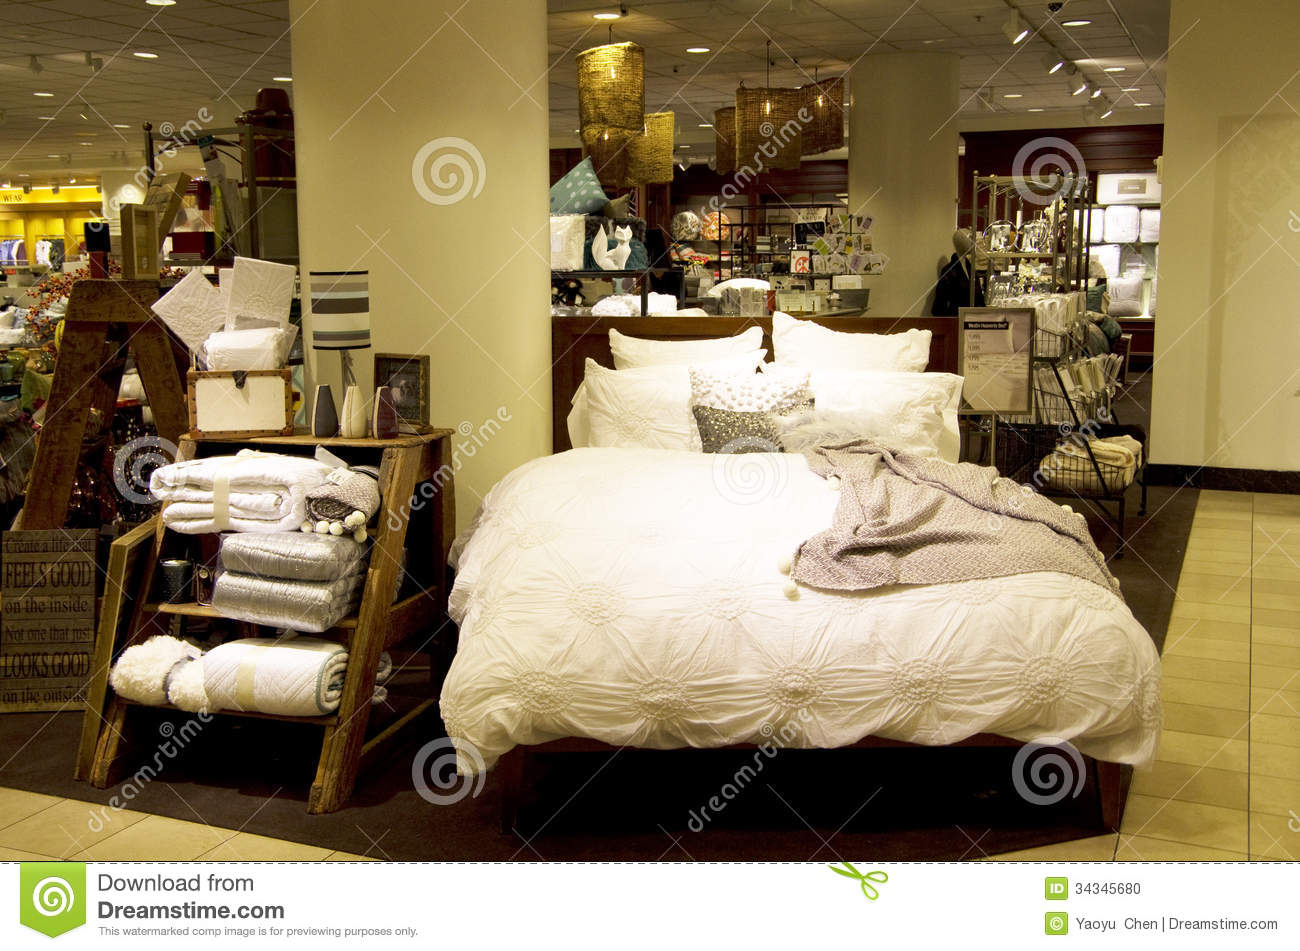 Bedding Sets And Home Decor Department Store Editorial Image